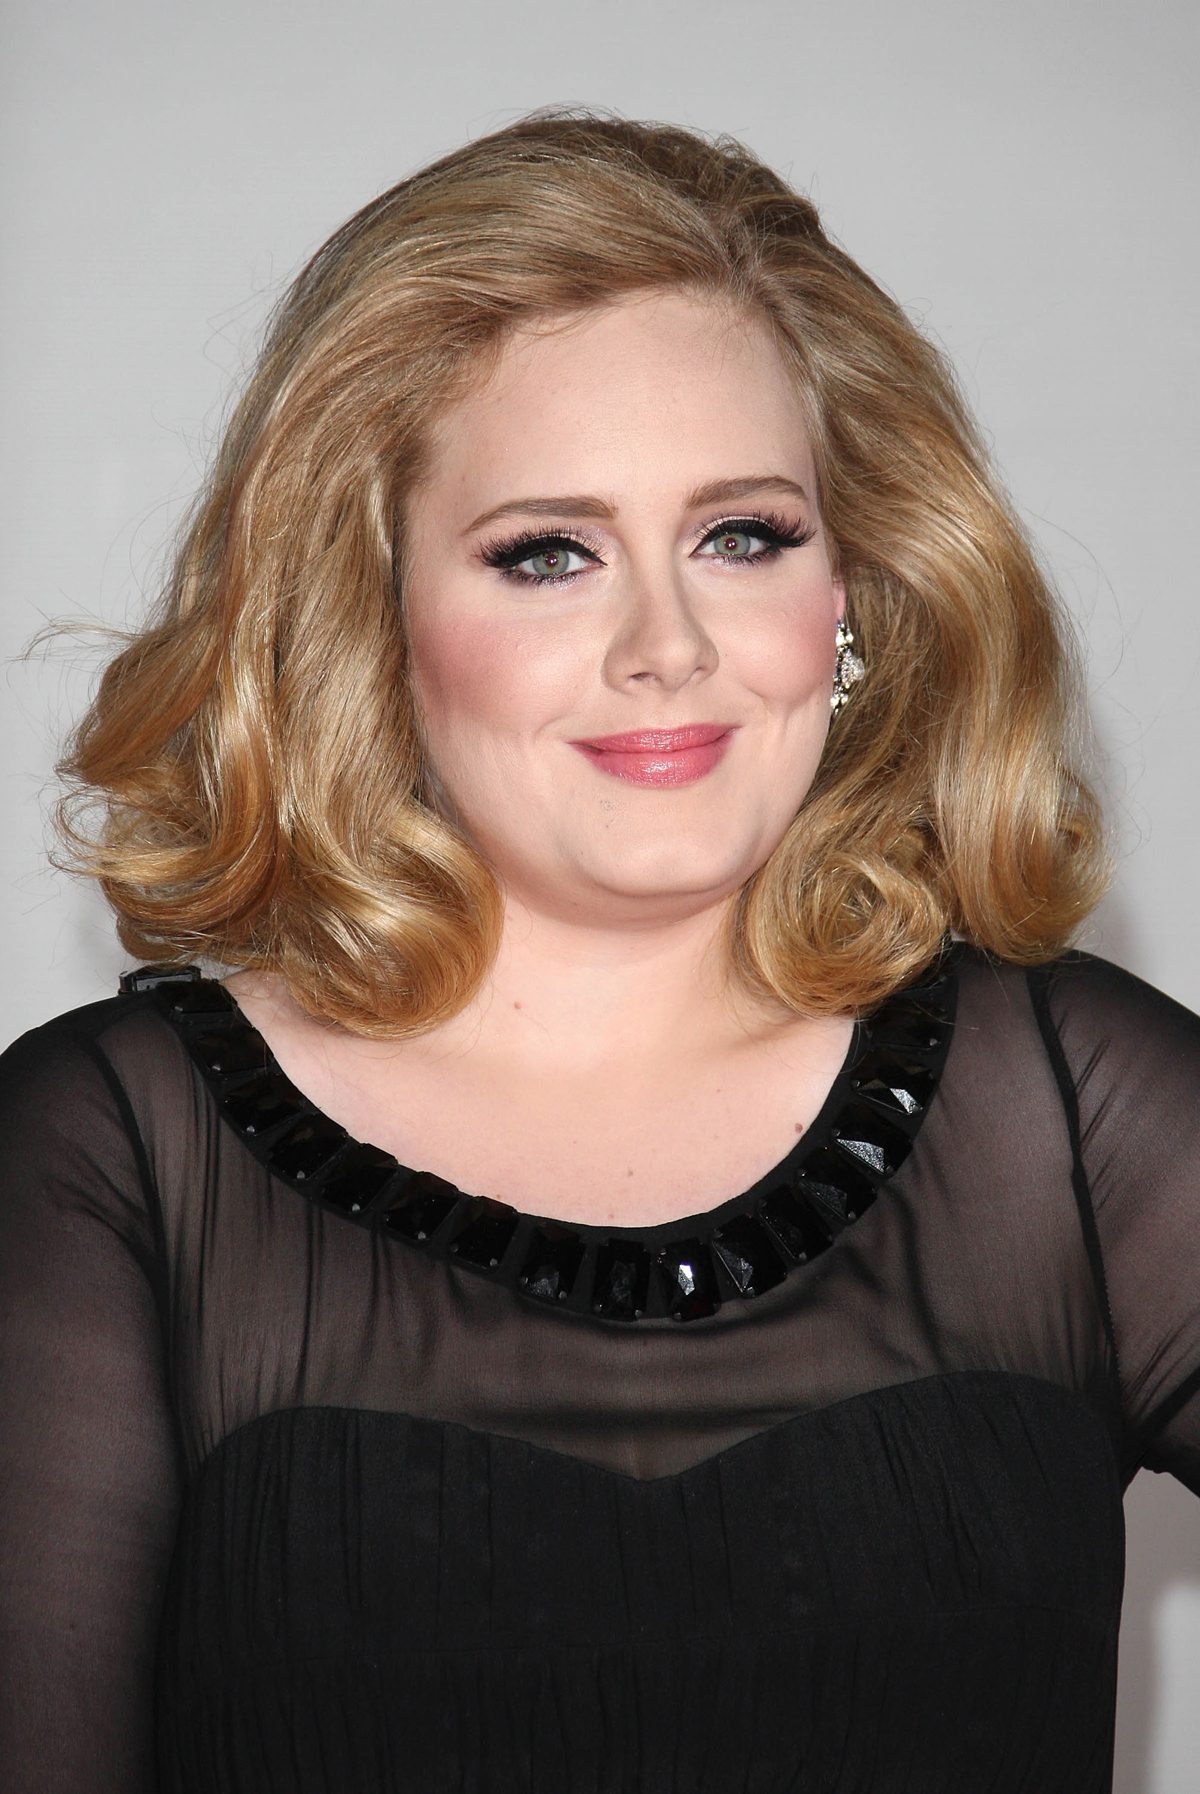 Adele May Have To Pay Her Ex $90 MILLION!